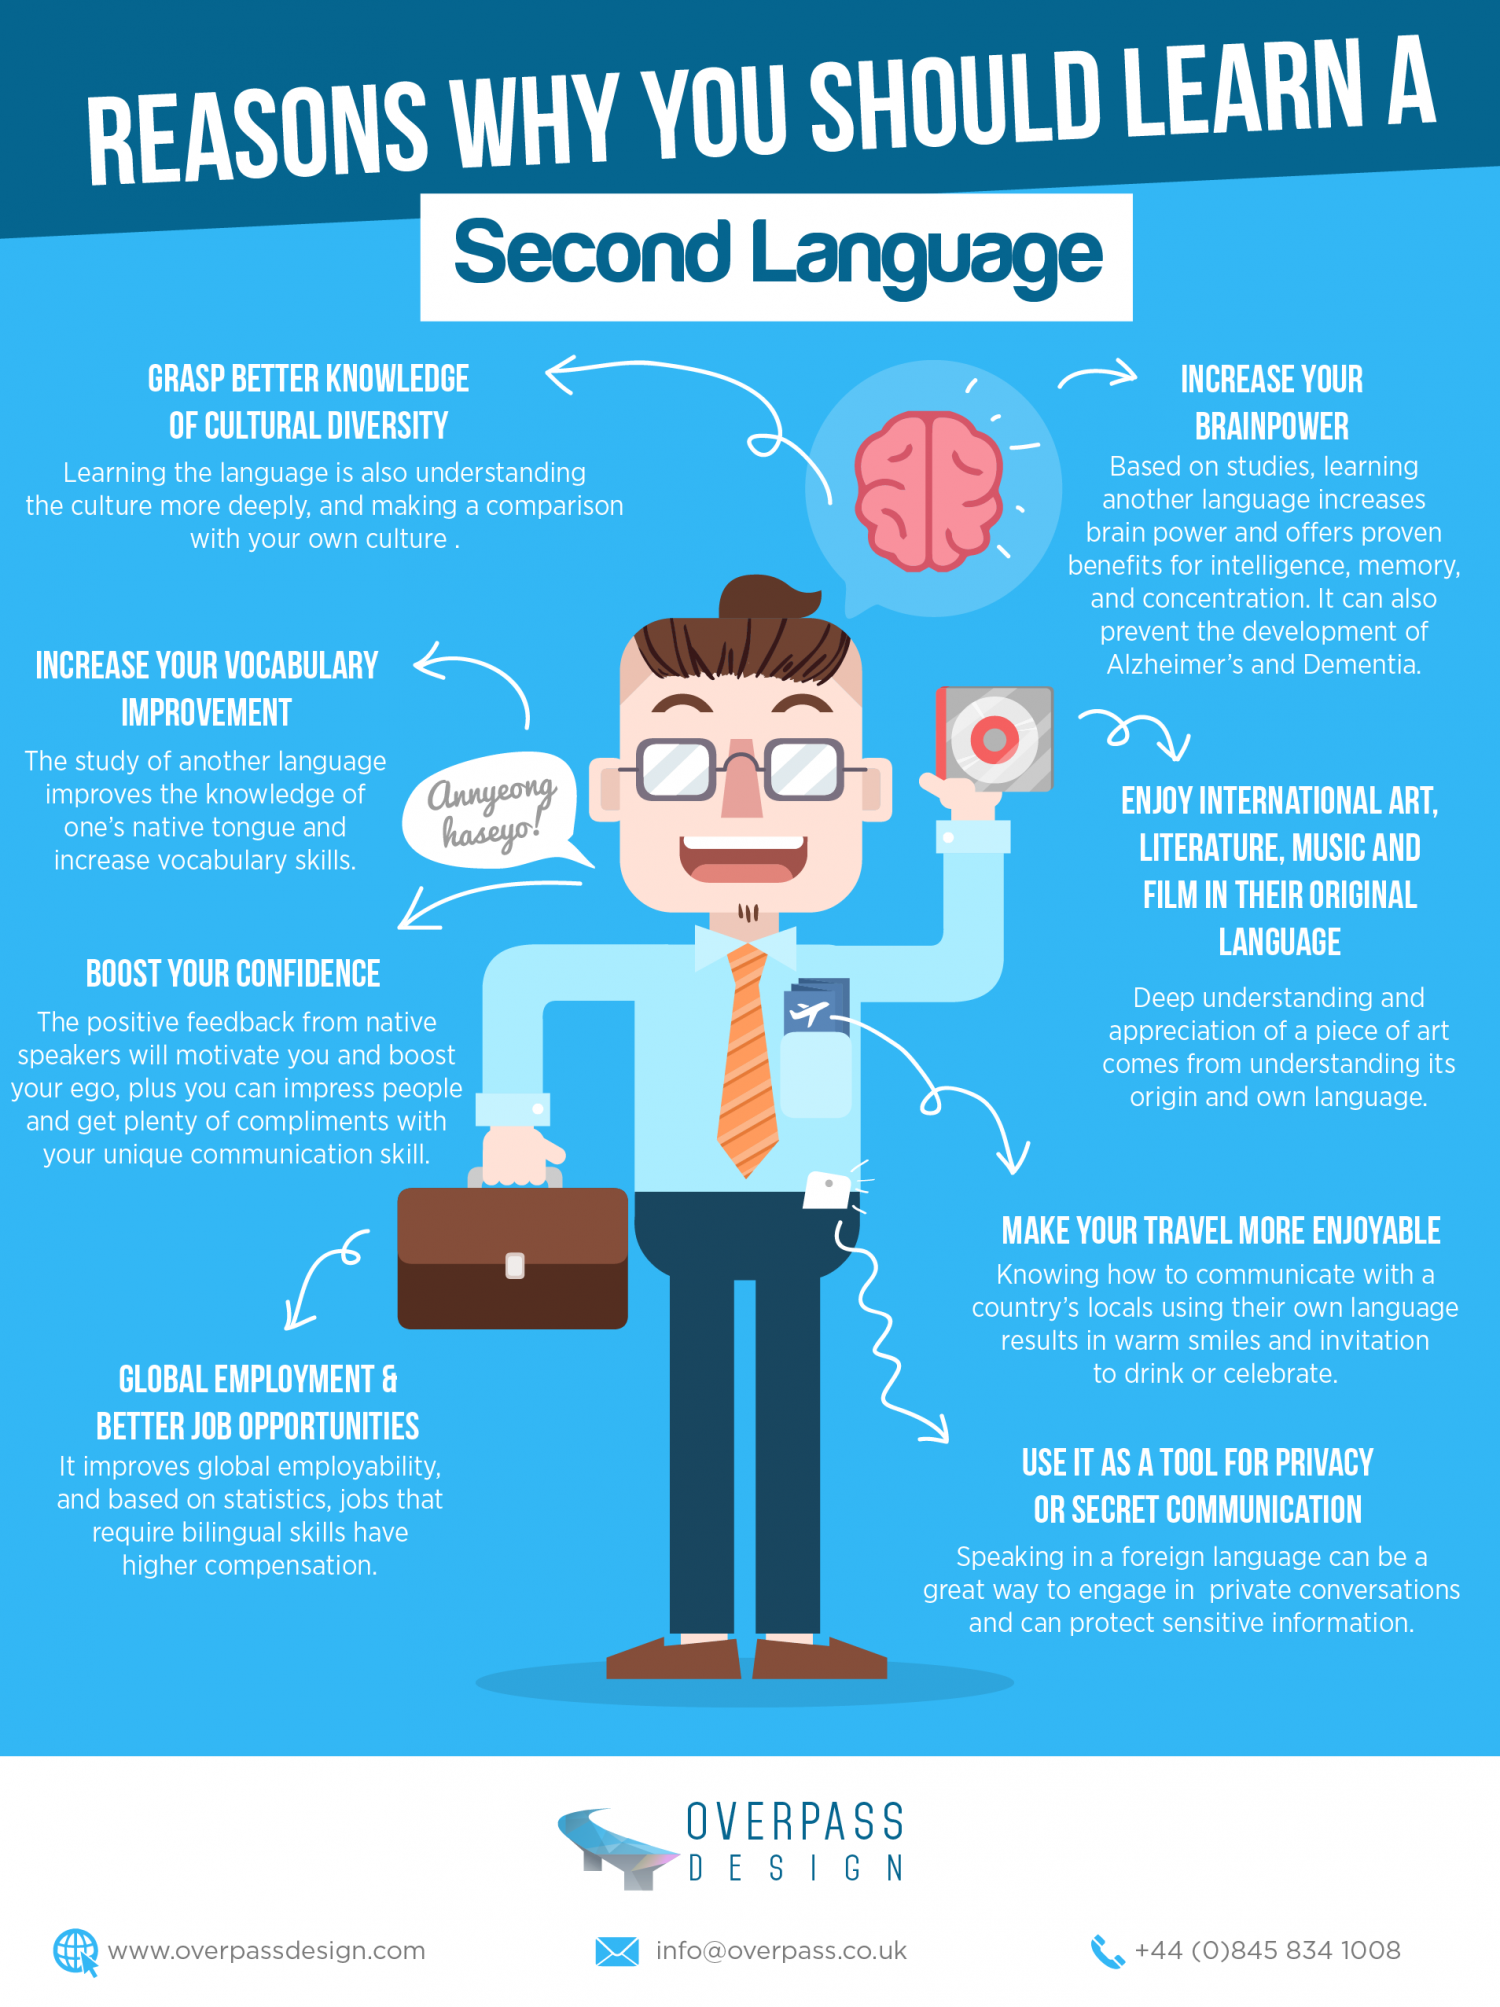 Reasons Why You Should Learn a Second Language Infographic